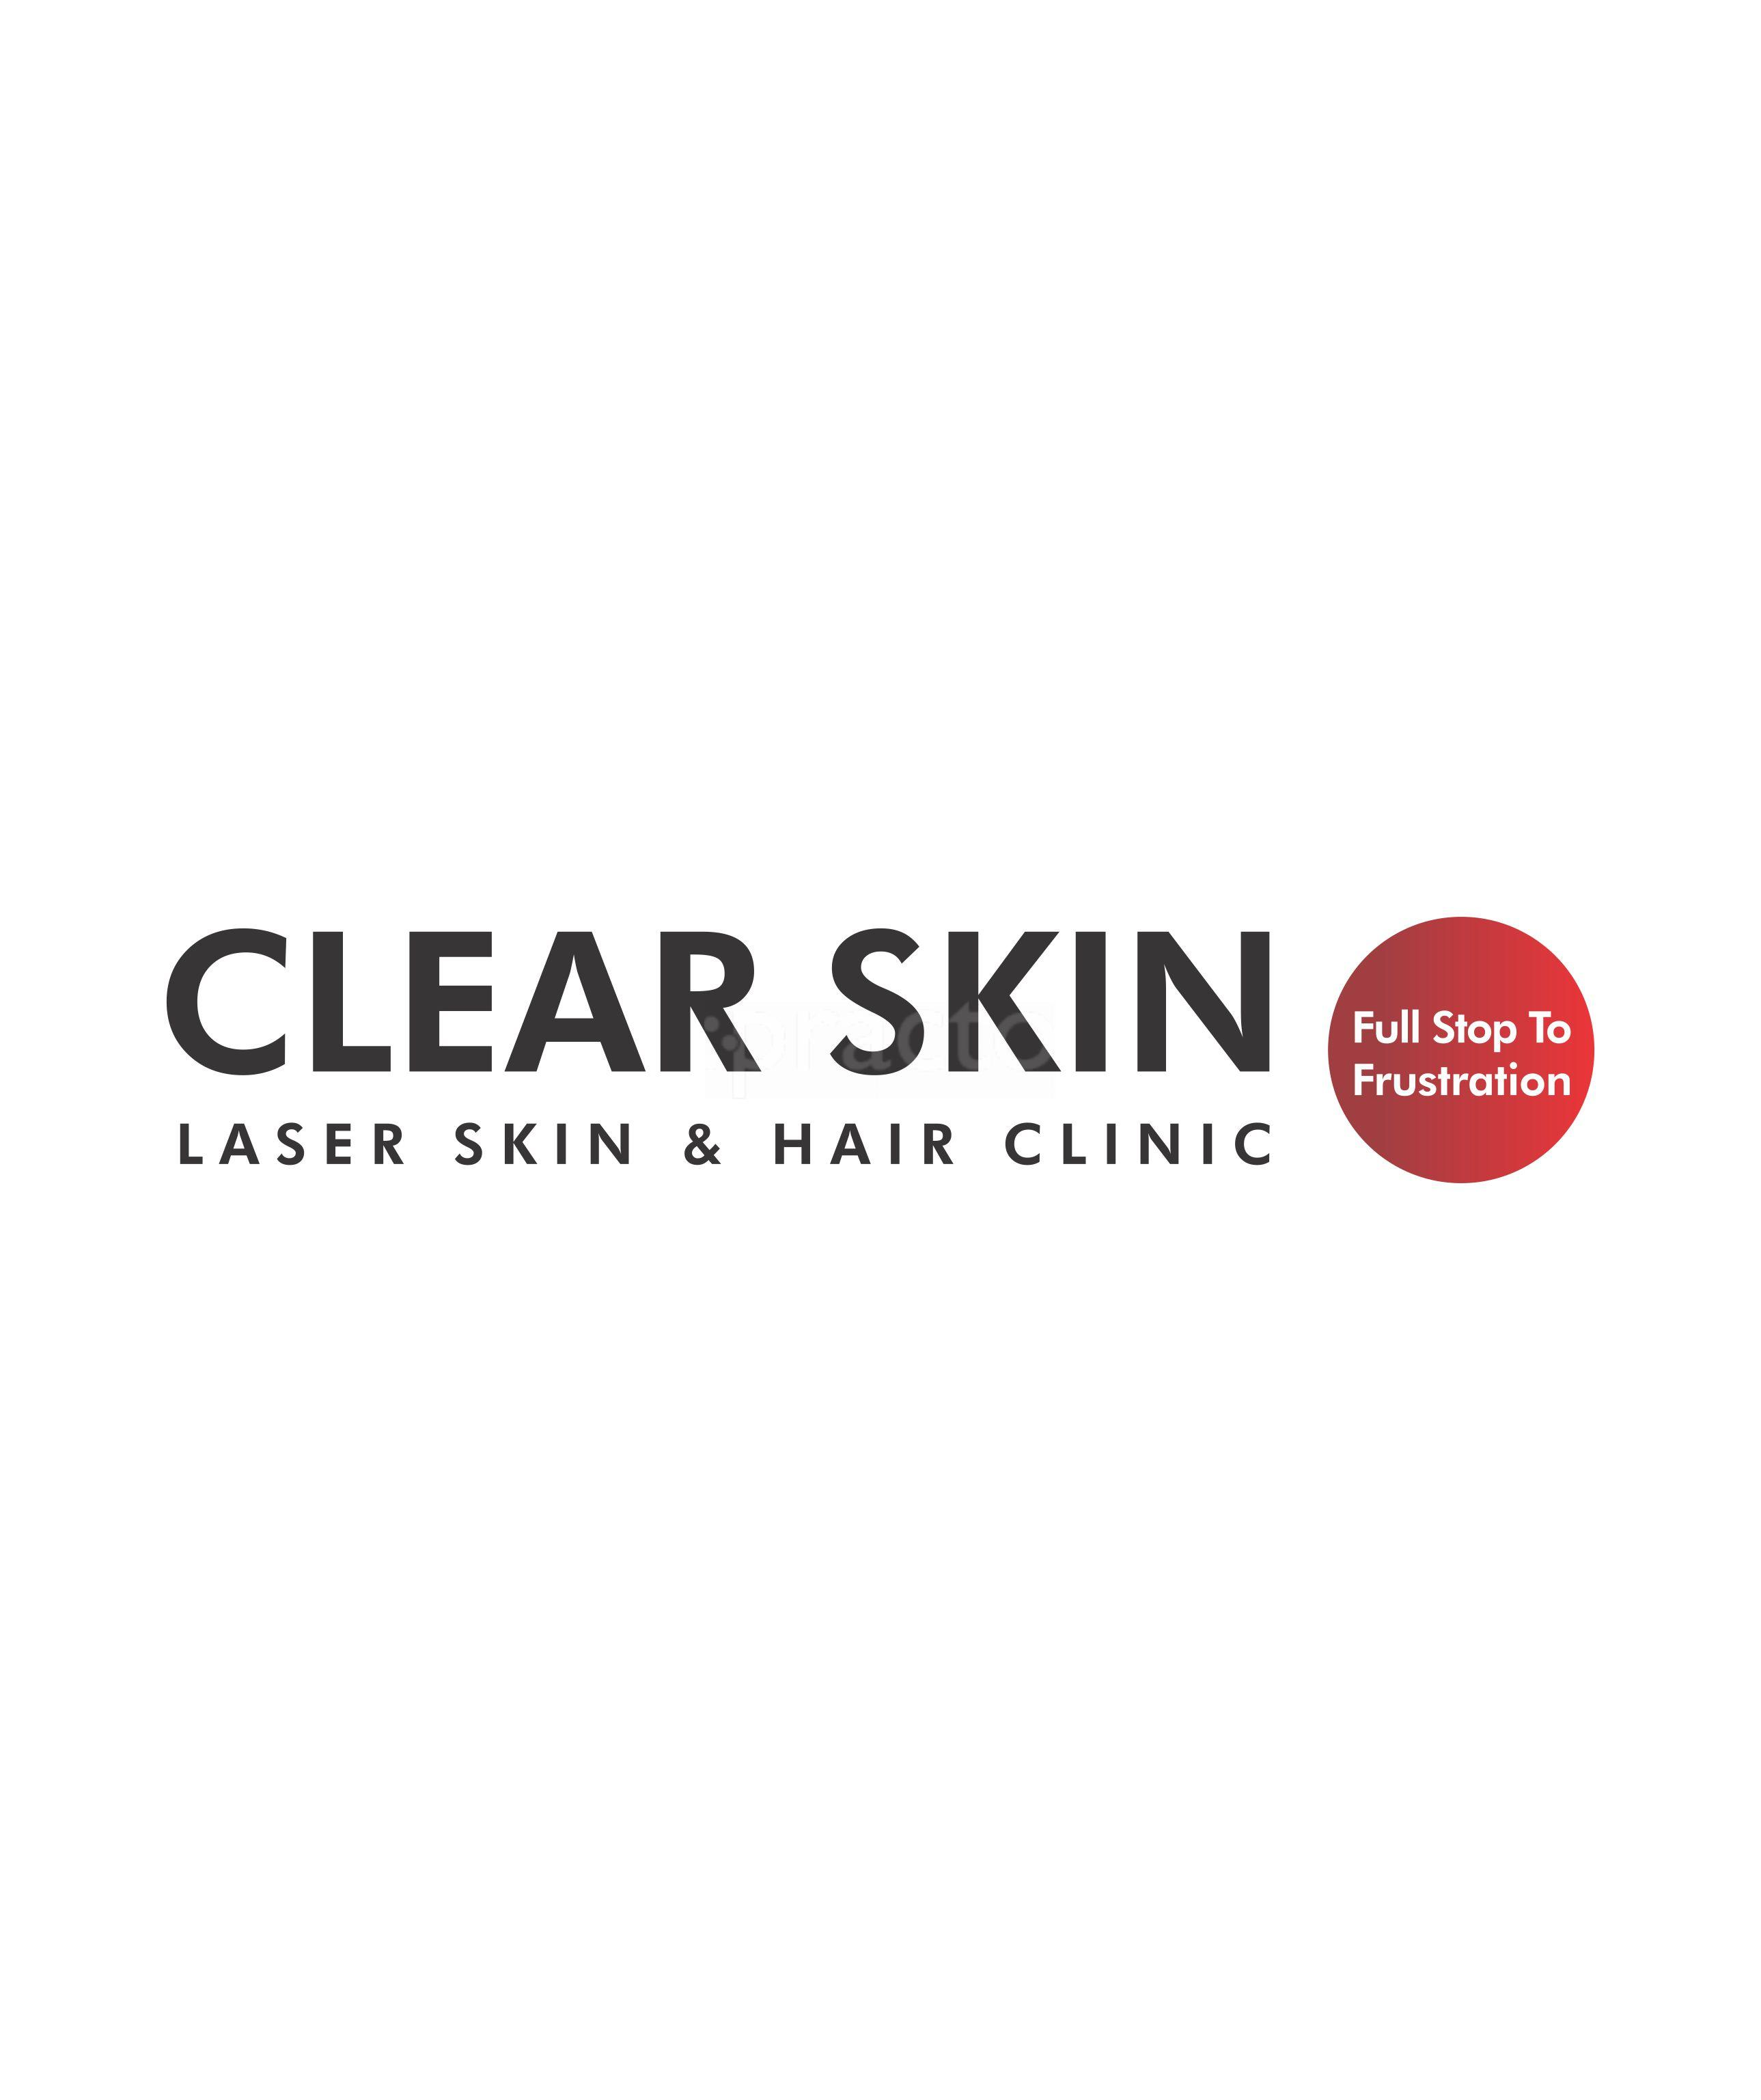 Clear Skin - Laser Skin & Hair Clinic (Camp)